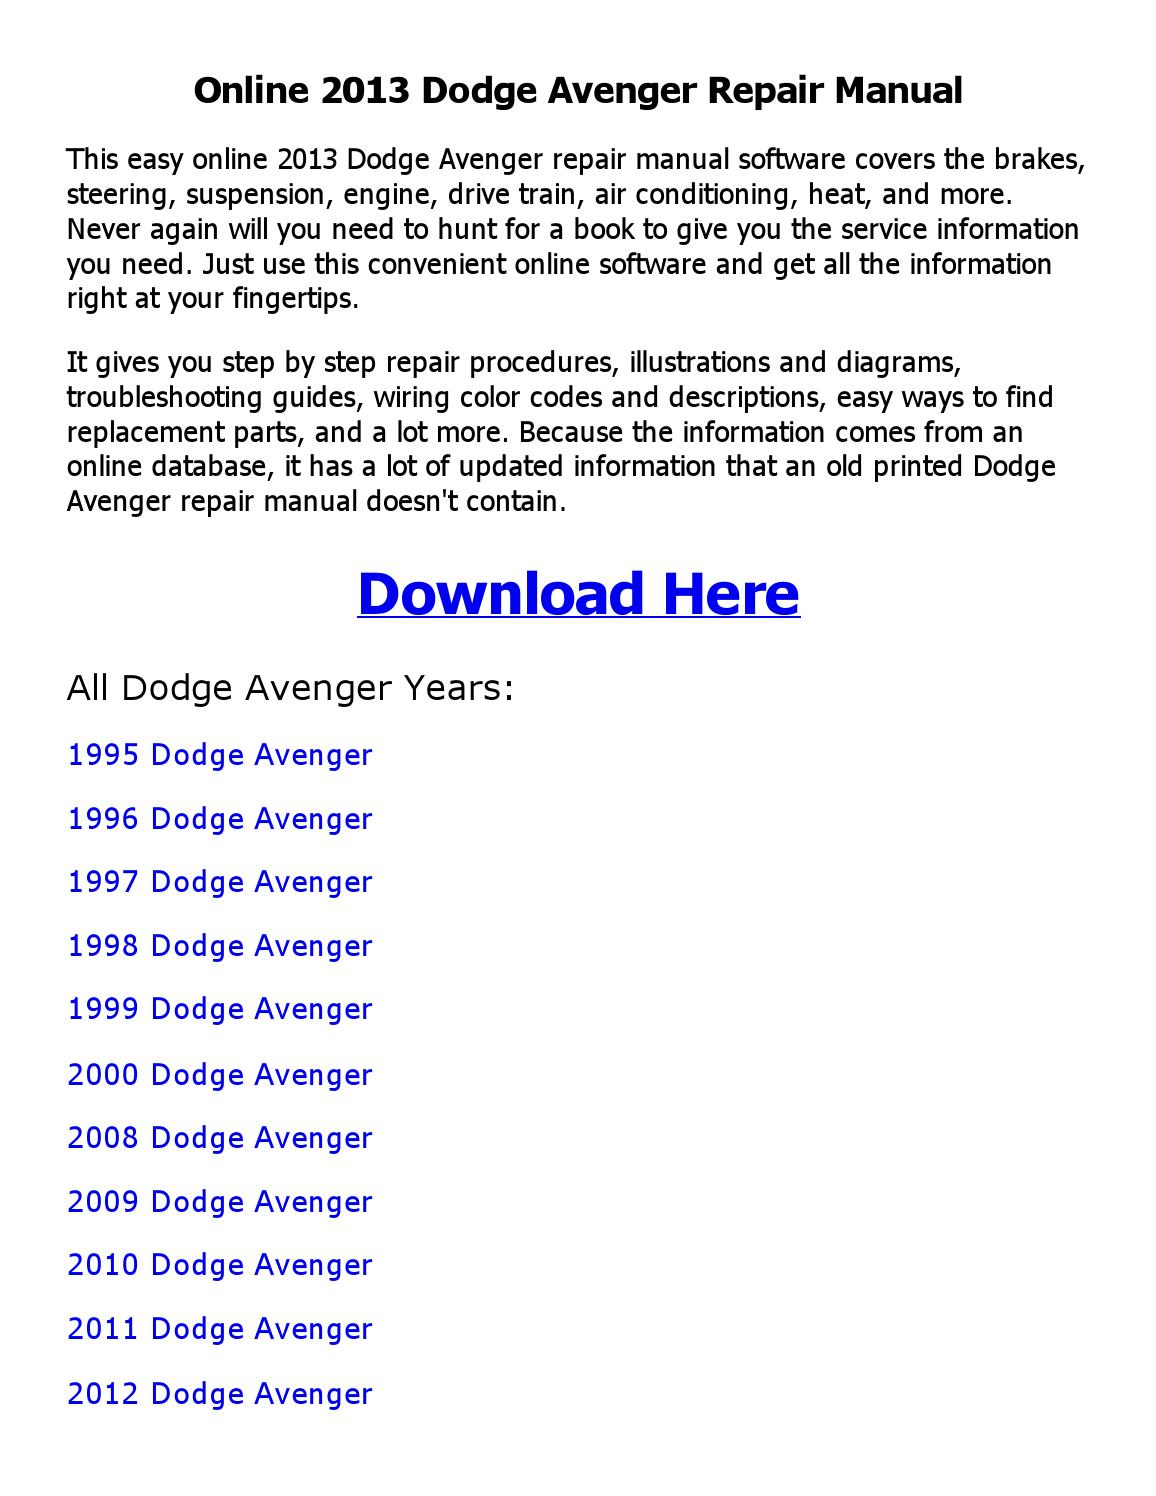 2013 dodge avenger wiring diagram 2013 dodge avenger repair manual online by sujith navarathne issuu  2013 dodge avenger repair manual online